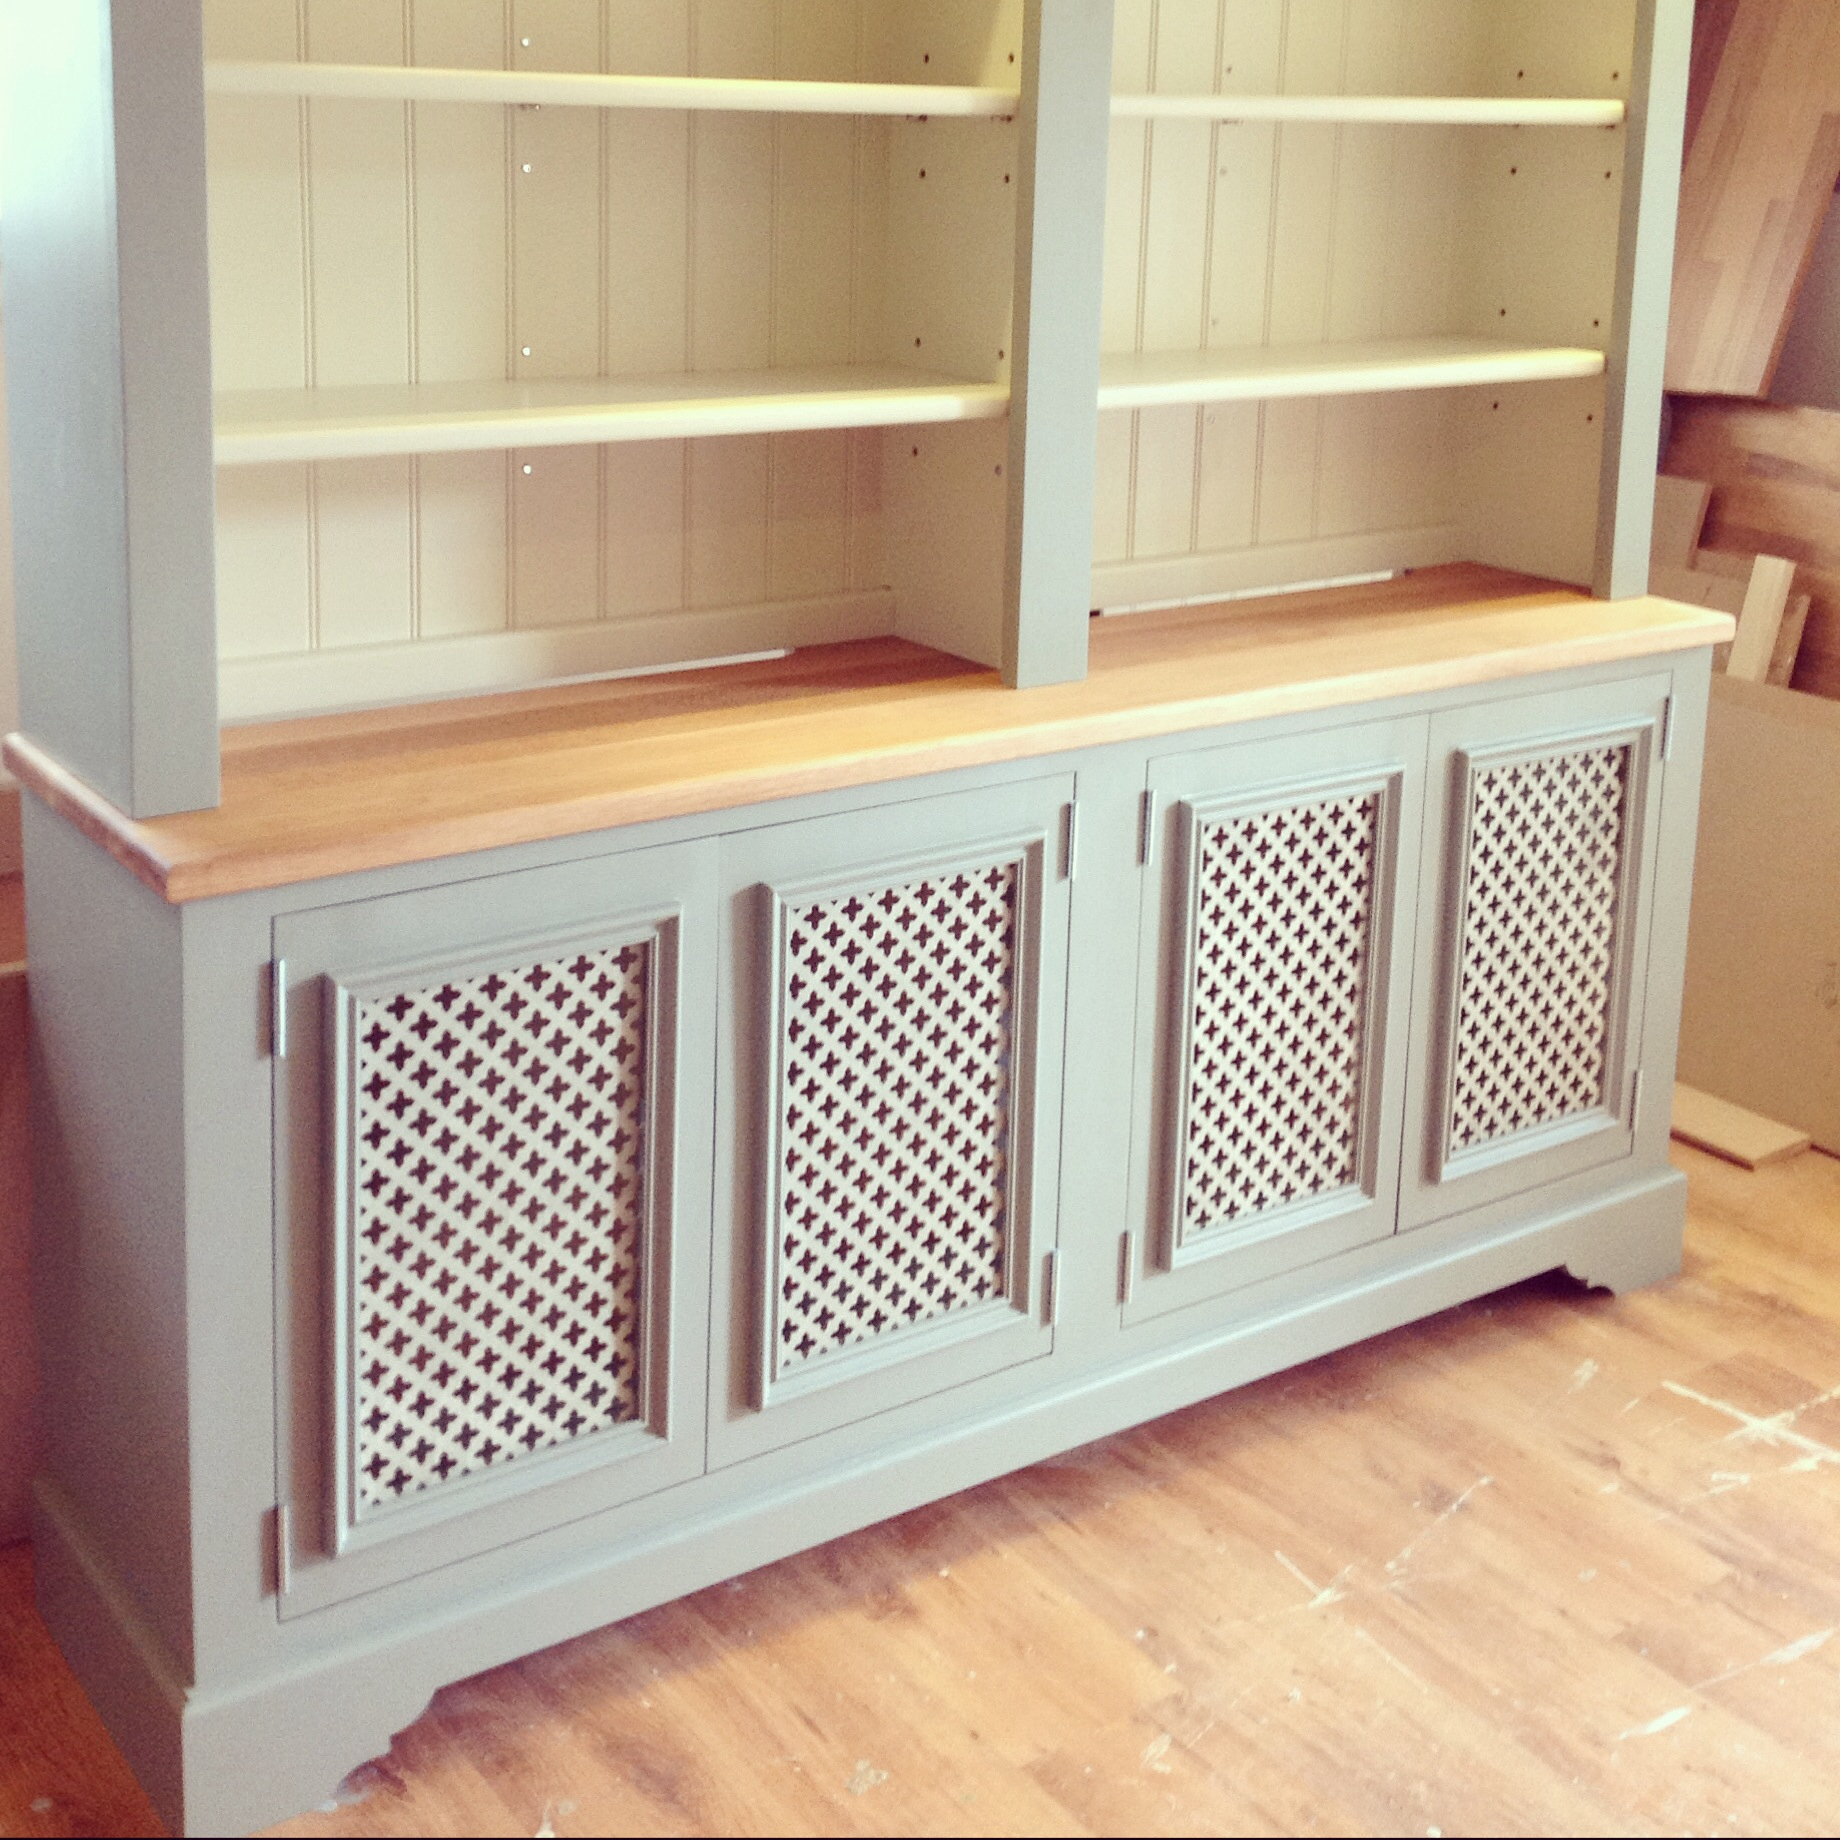 Kitchen Cabinet Covers Radiator Cabinet With Grilles In Lower With Regard To Radiator Cabinet Bookcase (#9 of 15)